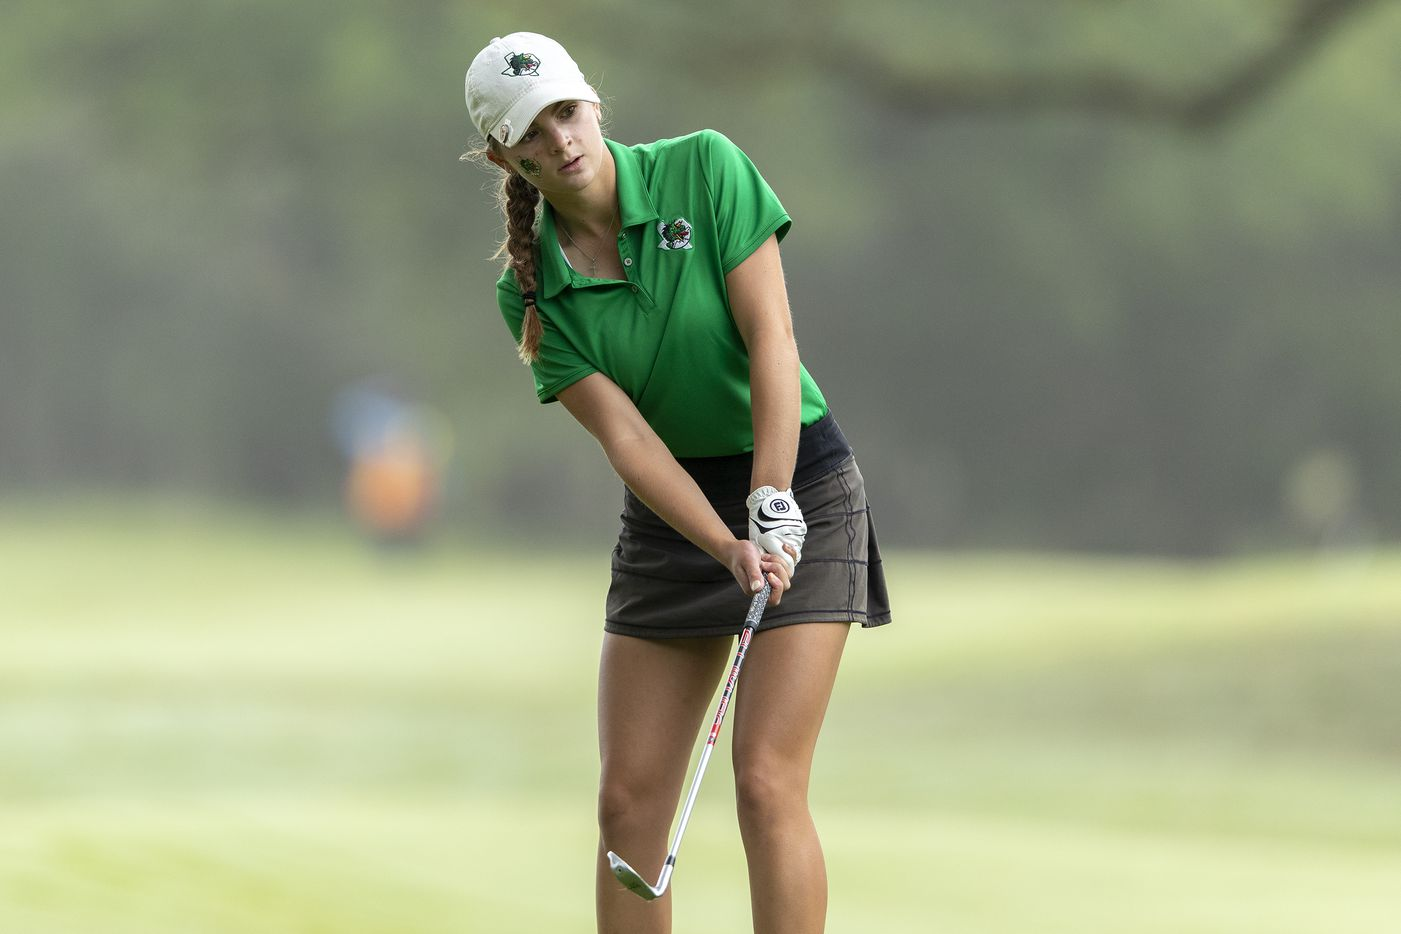 Southlake Carroll's MaKayla Tyrrell chips on to the 1st green during the final day of the UIL Class 5A girls golf tournament in Georgetown, Tuesday, May 11, 2021. (Stephen Spillman/Special Contributor)